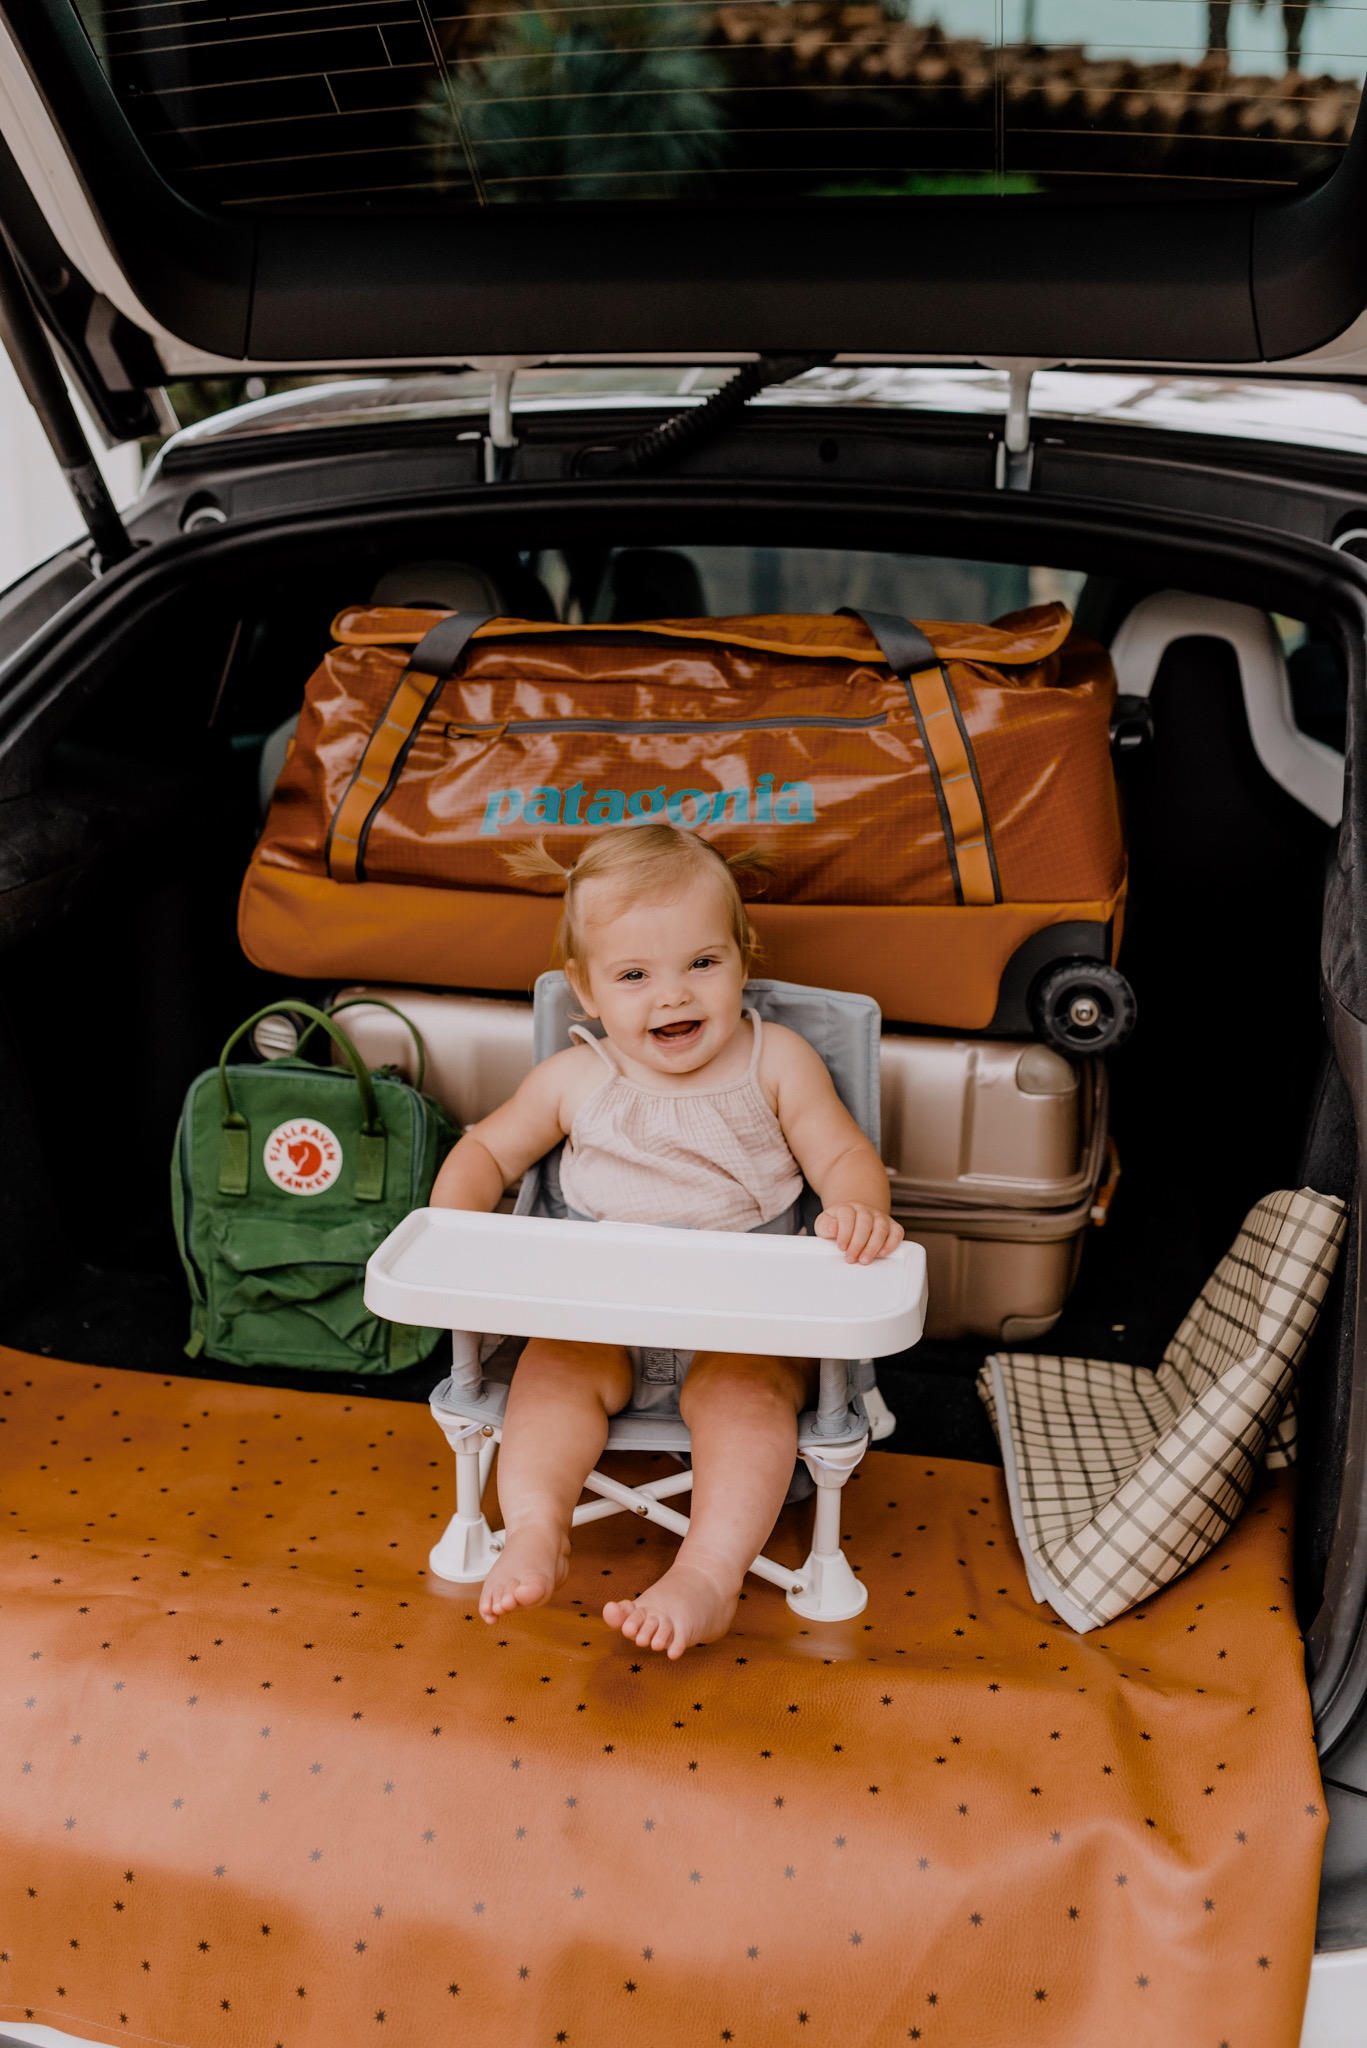 Family Travel by popular San Diego motherhood blog, Navy Grace: image of a baby girl sitting in a Amazon Summer Infant Summer Pop 'n Sit Portable Booster Chair net to a Gatrhe Mat, Patagonia rolling duffle bag, and 'Mini Kånken' Water Resistant Backpack FJÄLLRÄVEN in the back of a car.